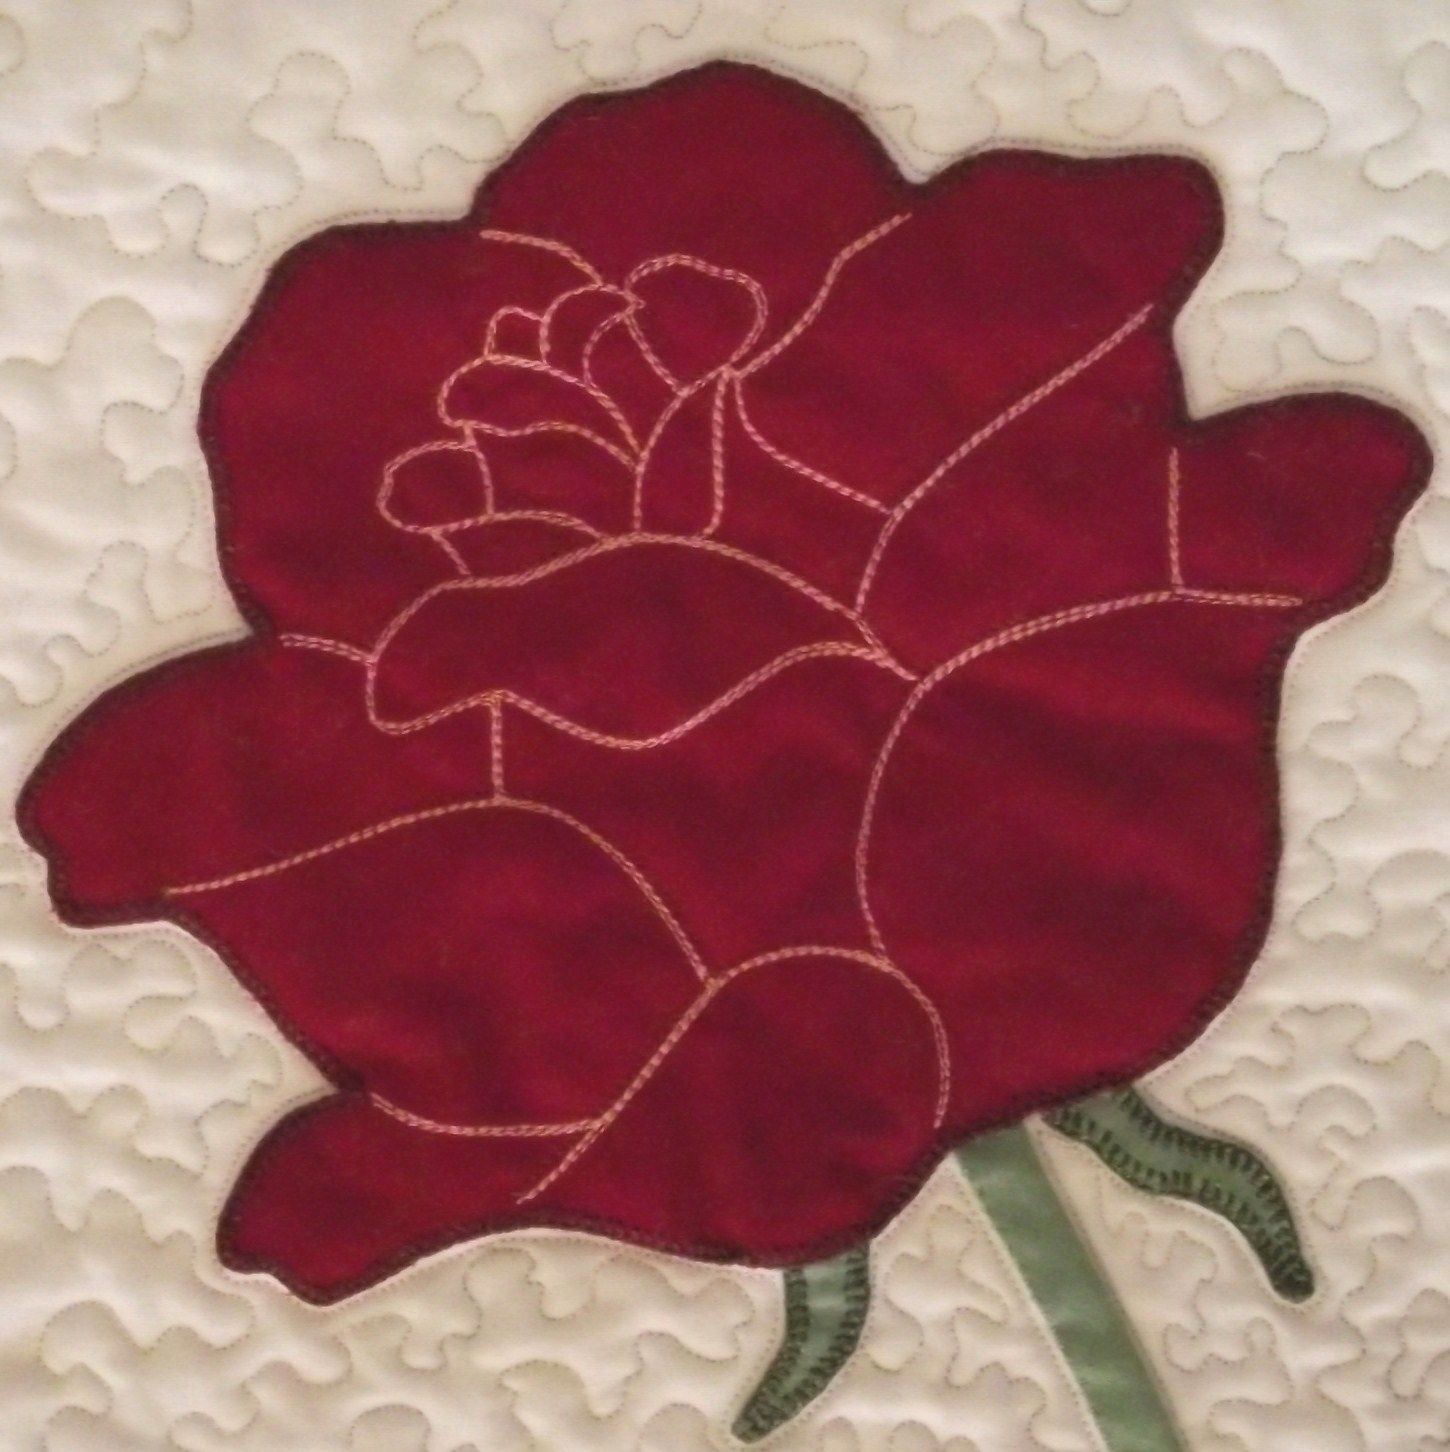 rose applique quilt pattern | The flower is one large piece, with ... : applique quilt patterns flowers - Adamdwight.com